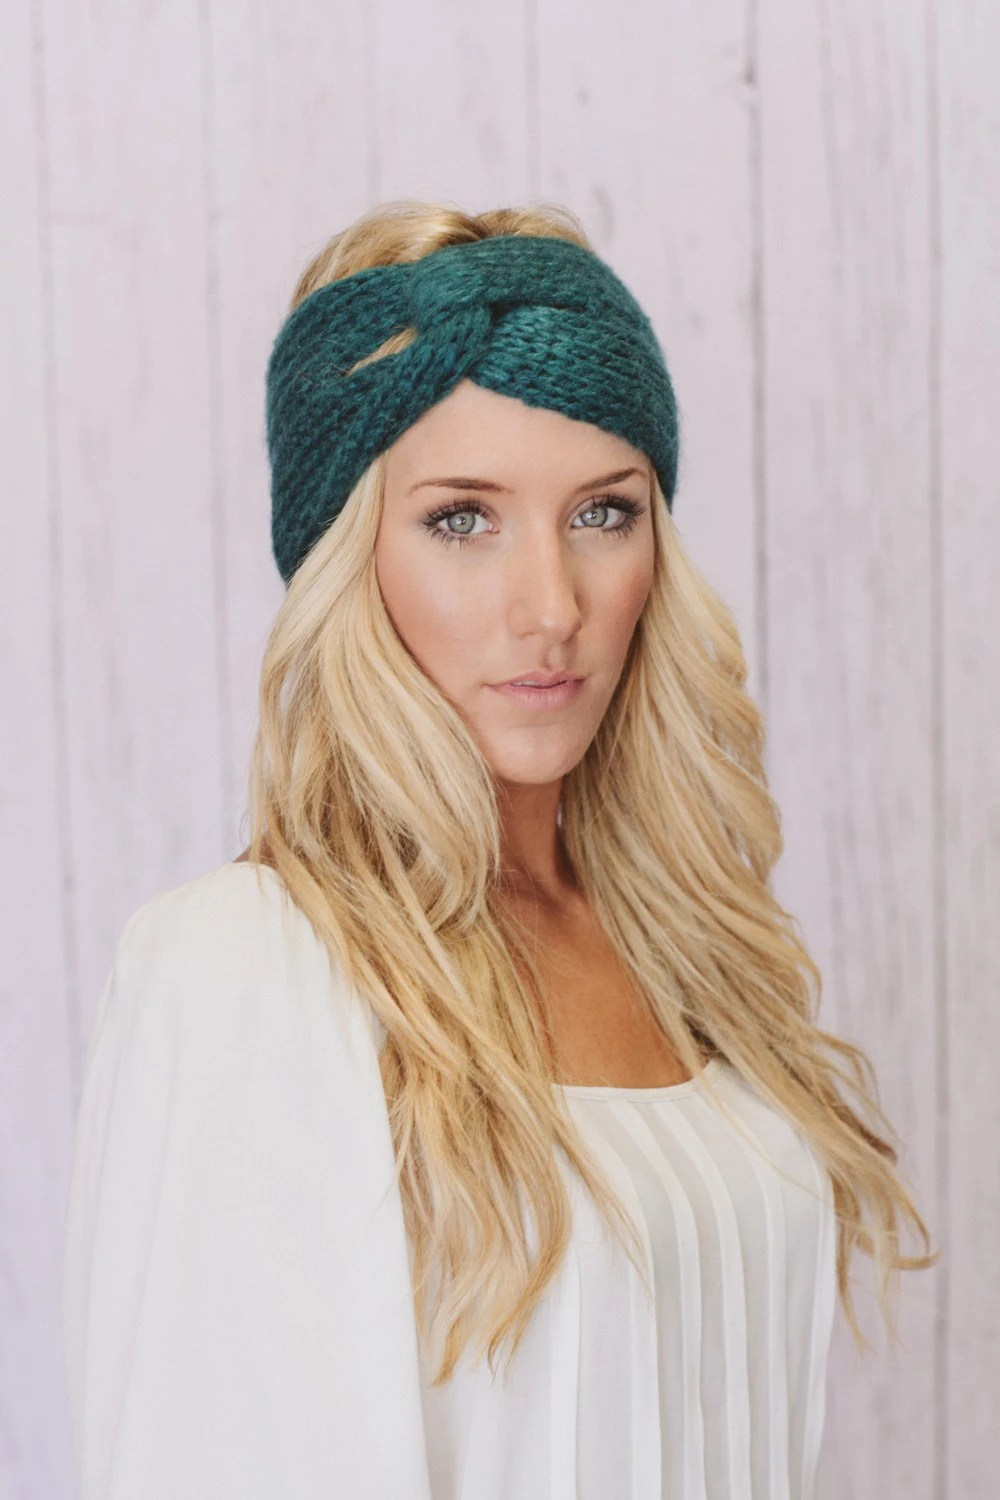 Teal Knitted Turban Headband Ear Warmer Dark Aqua Ear Warmer Winter Hair Bands Twist Style Wide Headband (KHB-01TEAL)